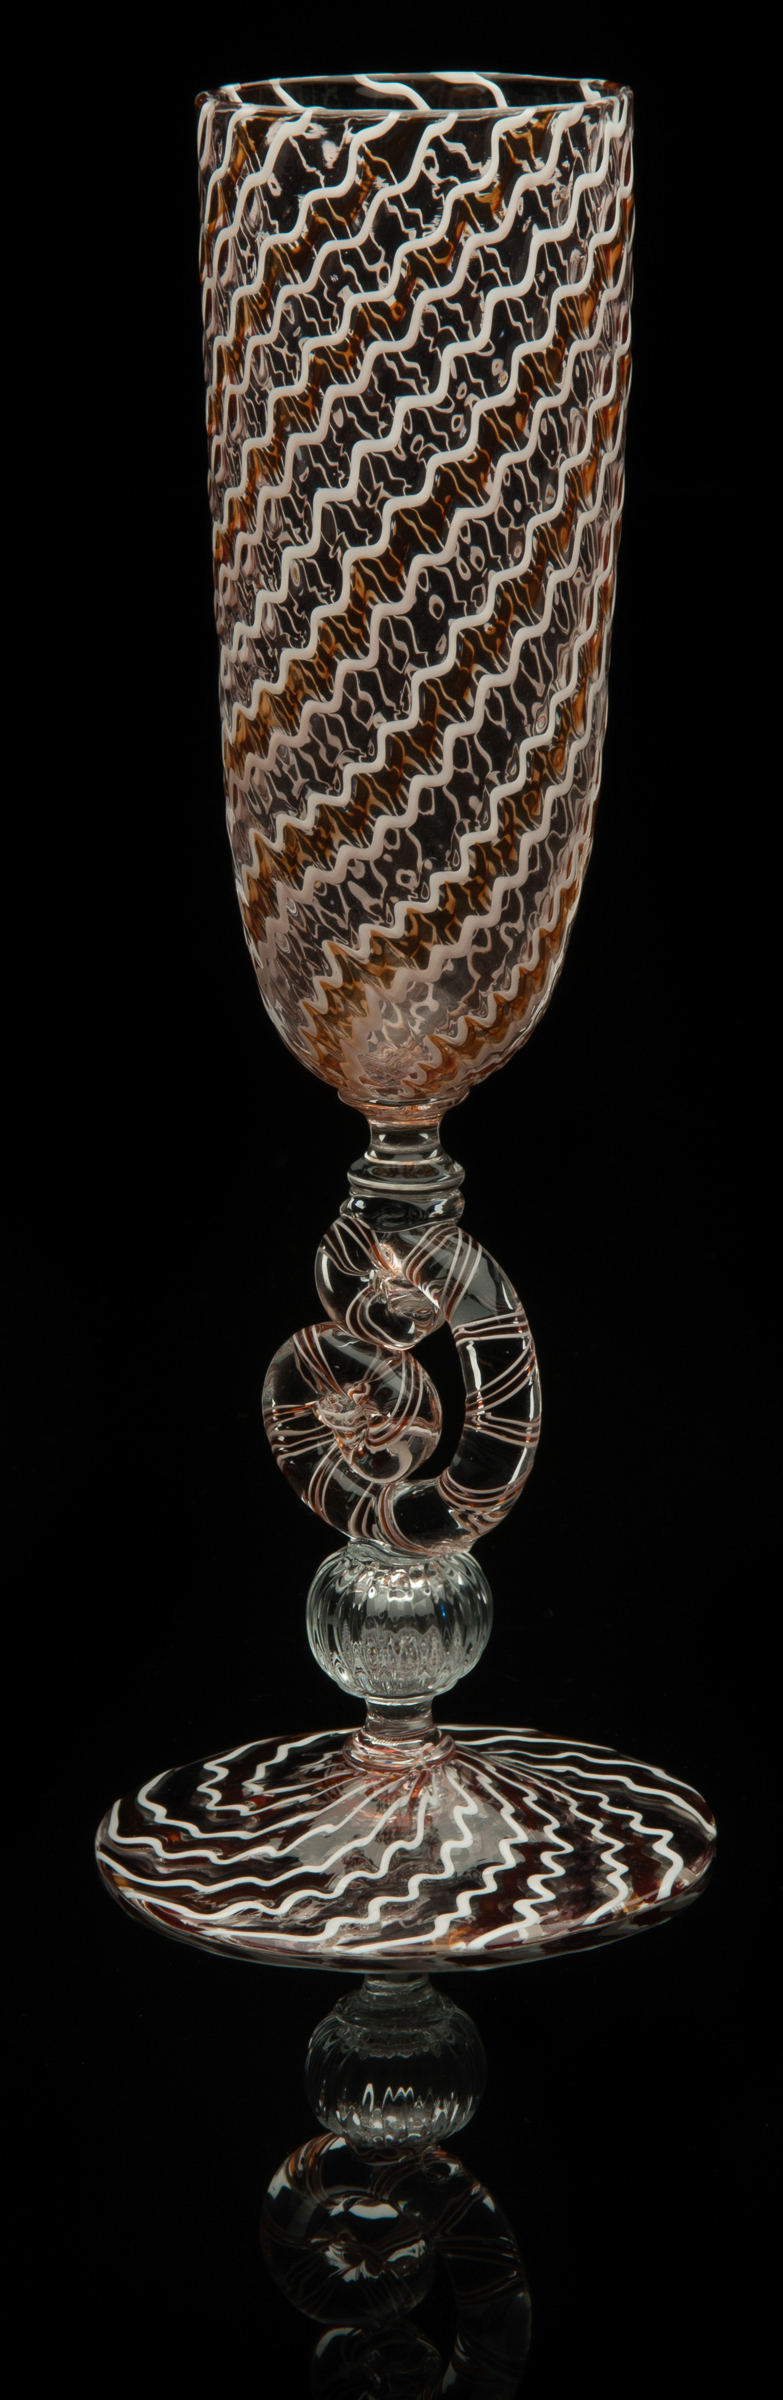 Lino Tagliapietra,  C-stem   Goblet  (1991-1994, glass, 9 x 3 1/4 x 3 1/4 inches), LT.73